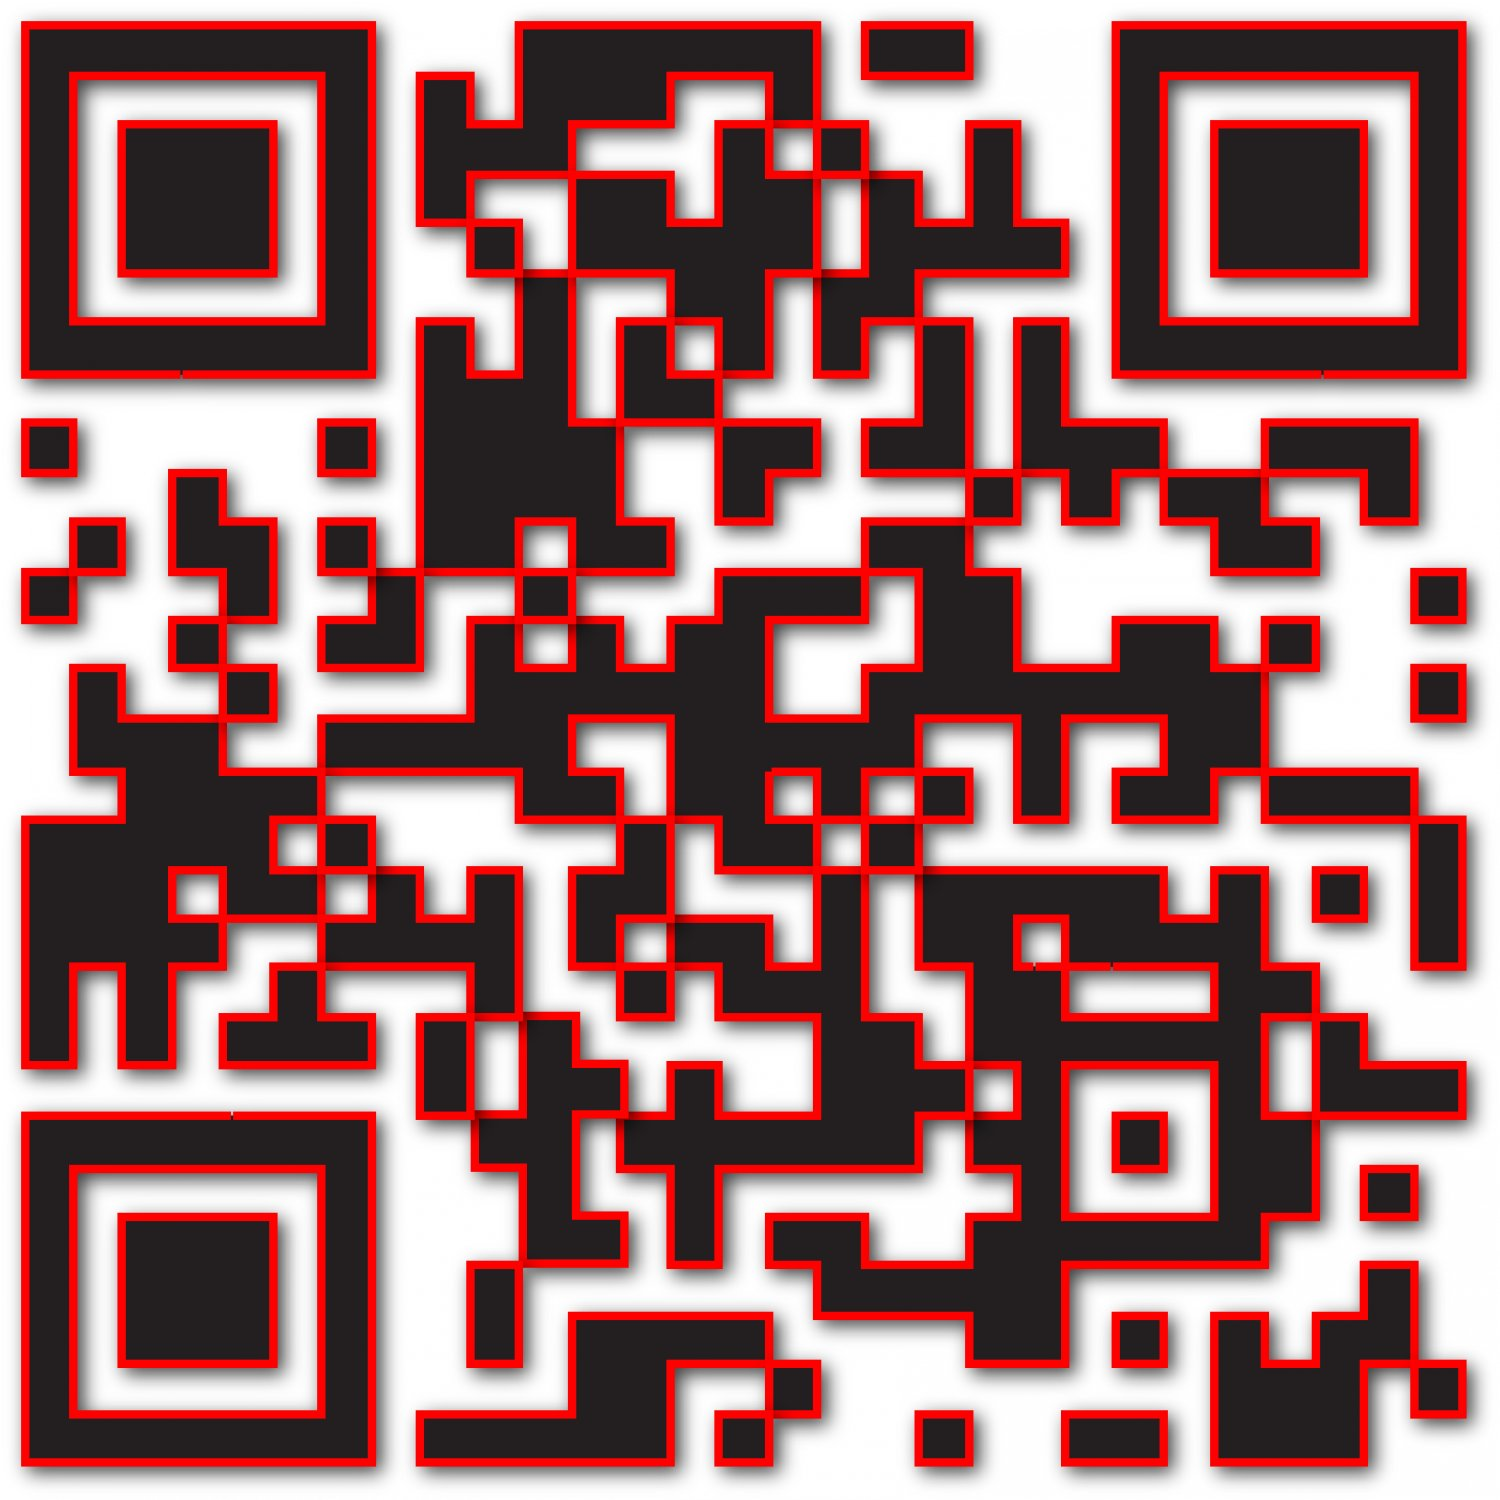 - Art and the Zen of QR Codes -- Making QaRt -  - Art and the Zen of QR Codes - QaRt - making art from QR codes. - - art  - photography - by Tony Karp